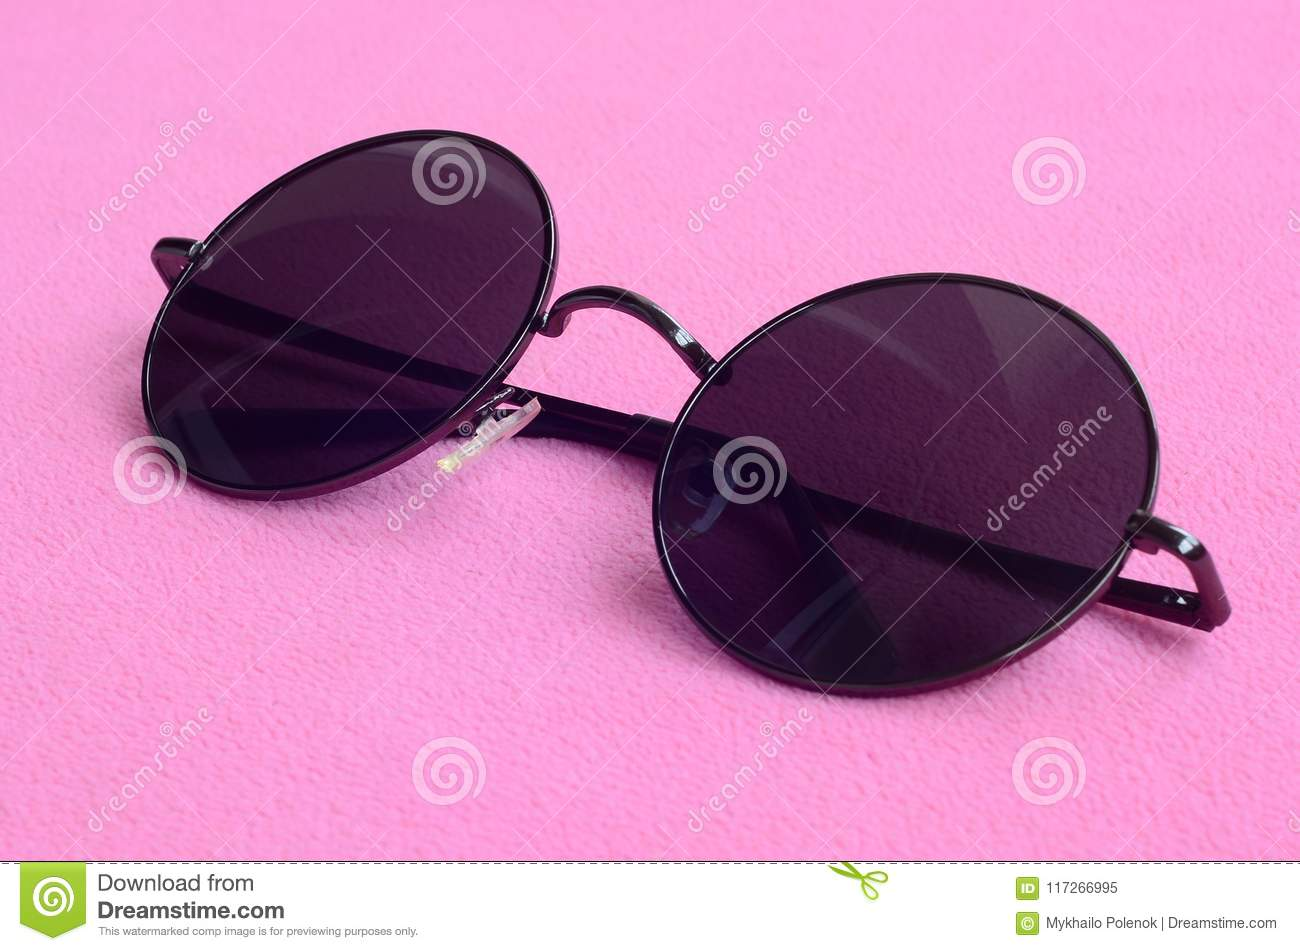 cd08f4ba68b1 Stylish black sunglasses with round glasses lies on a blanket made of soft  and fluffy light pink fleece fabric. Fashionable background picture in  female ...